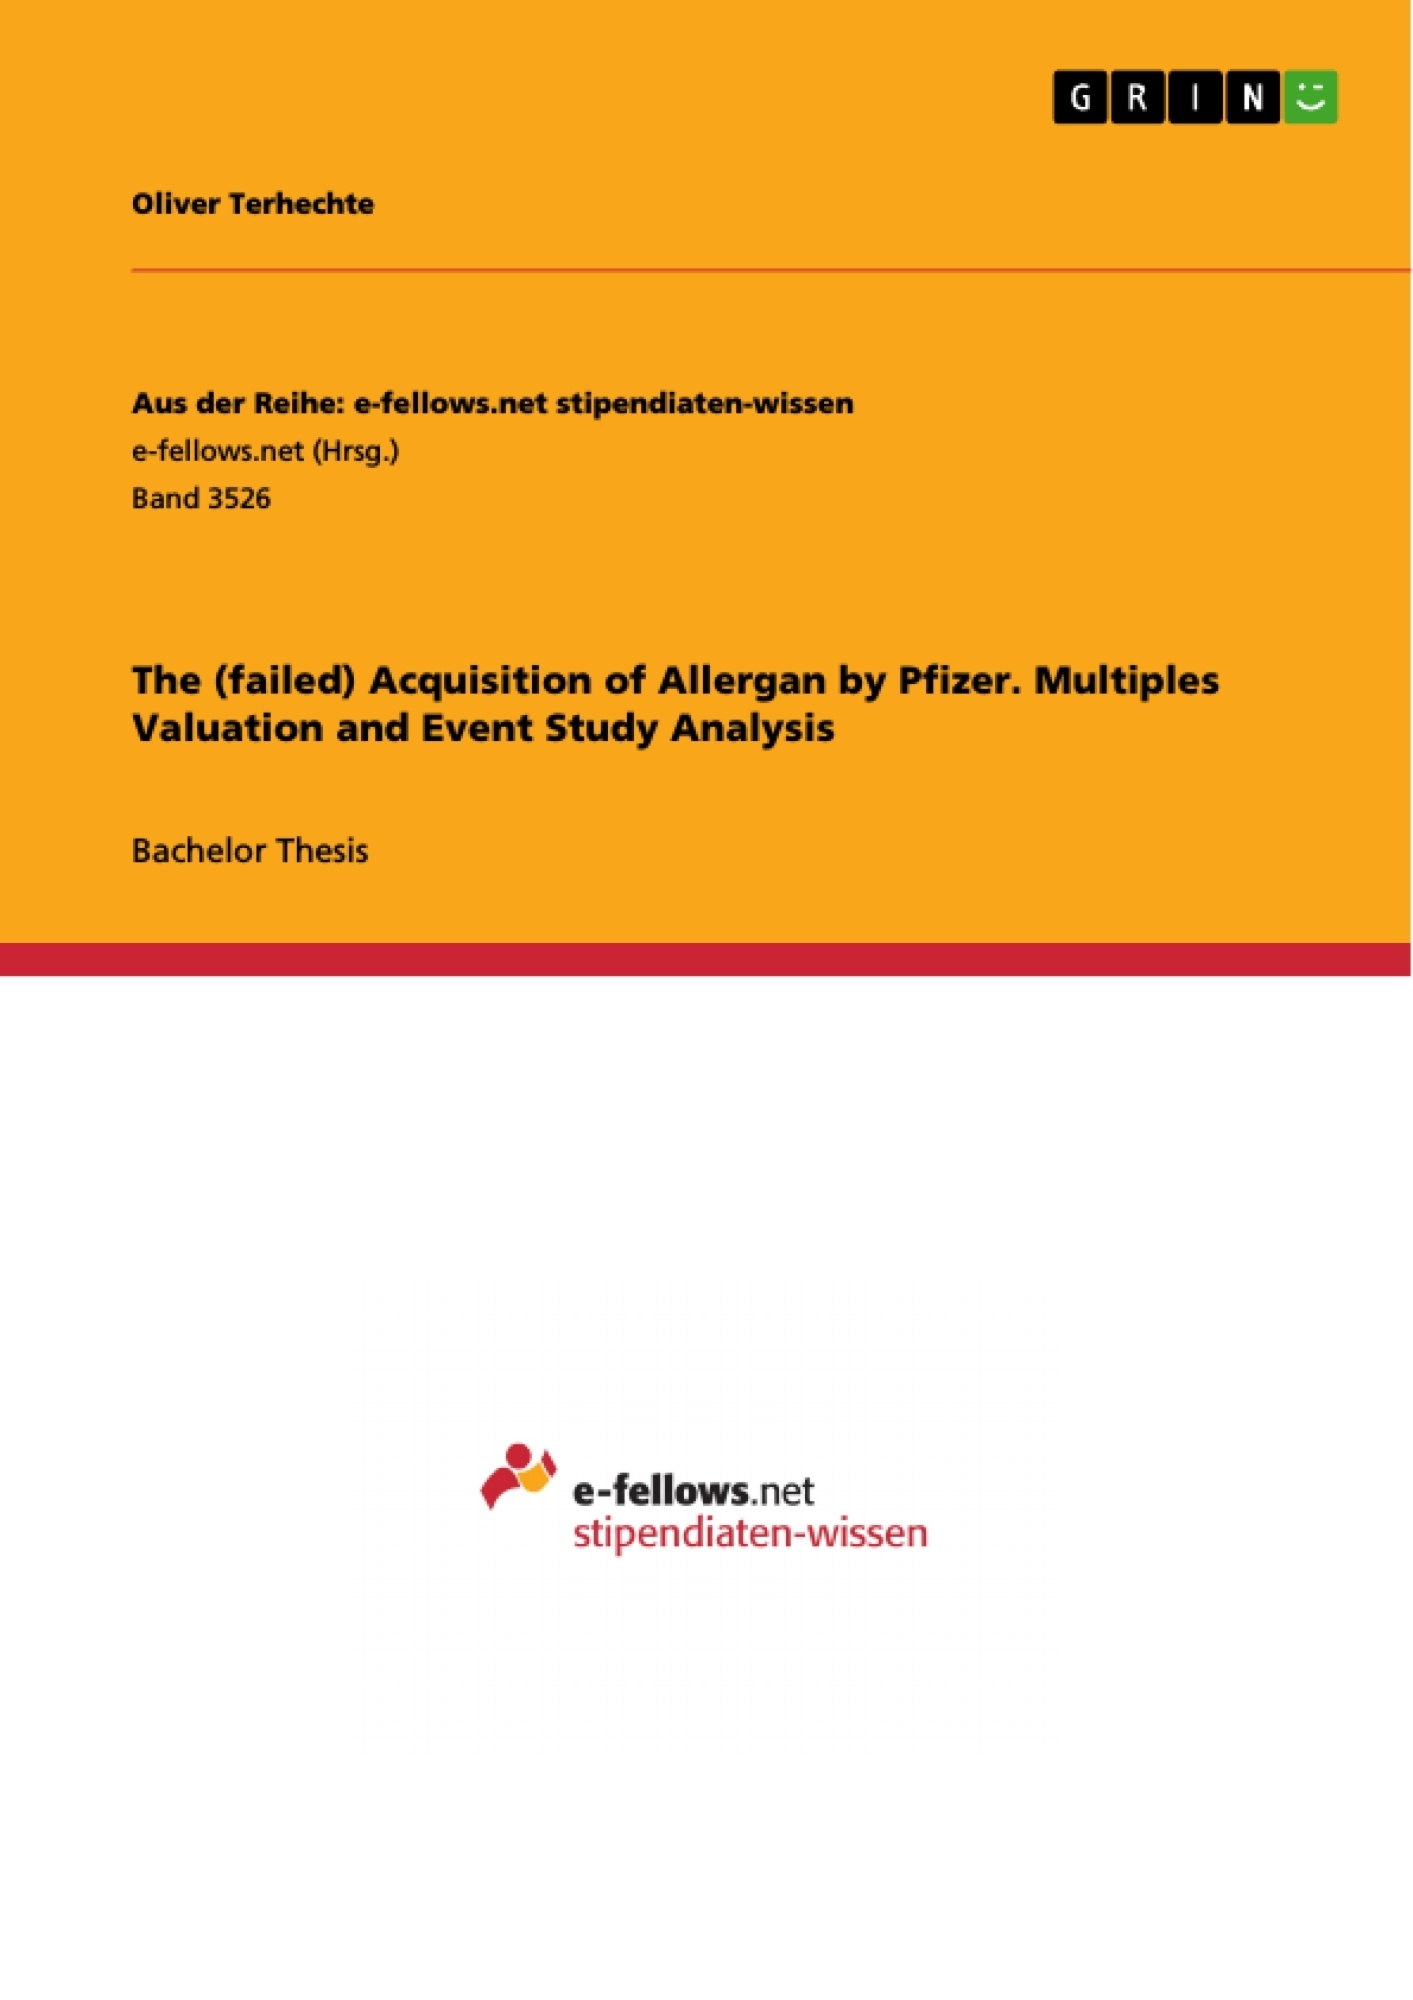 Title: The (failed) Acquisition of Allergan by Pfizer. Multiples Valuation and Event Study Analysis